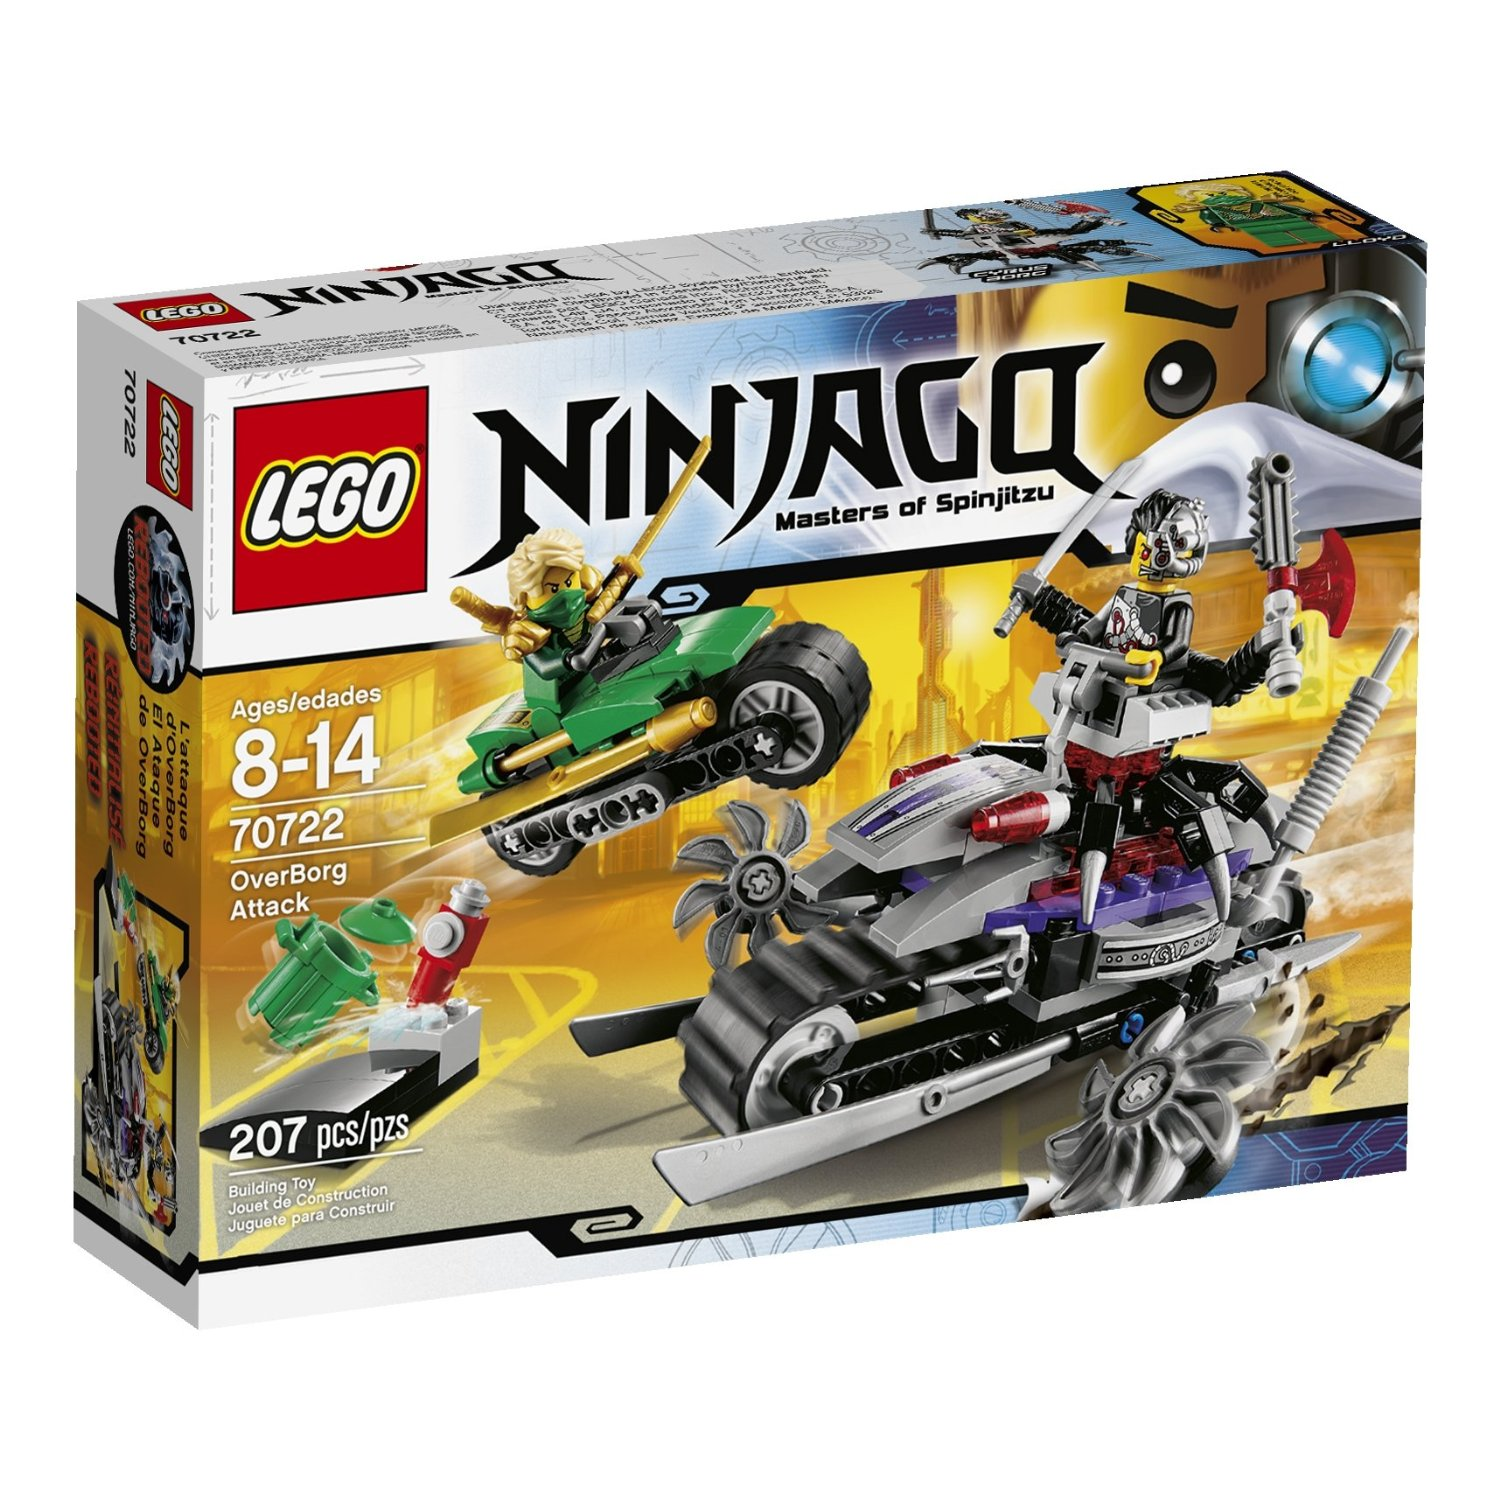 ninjago 70722 lattaque doverborg